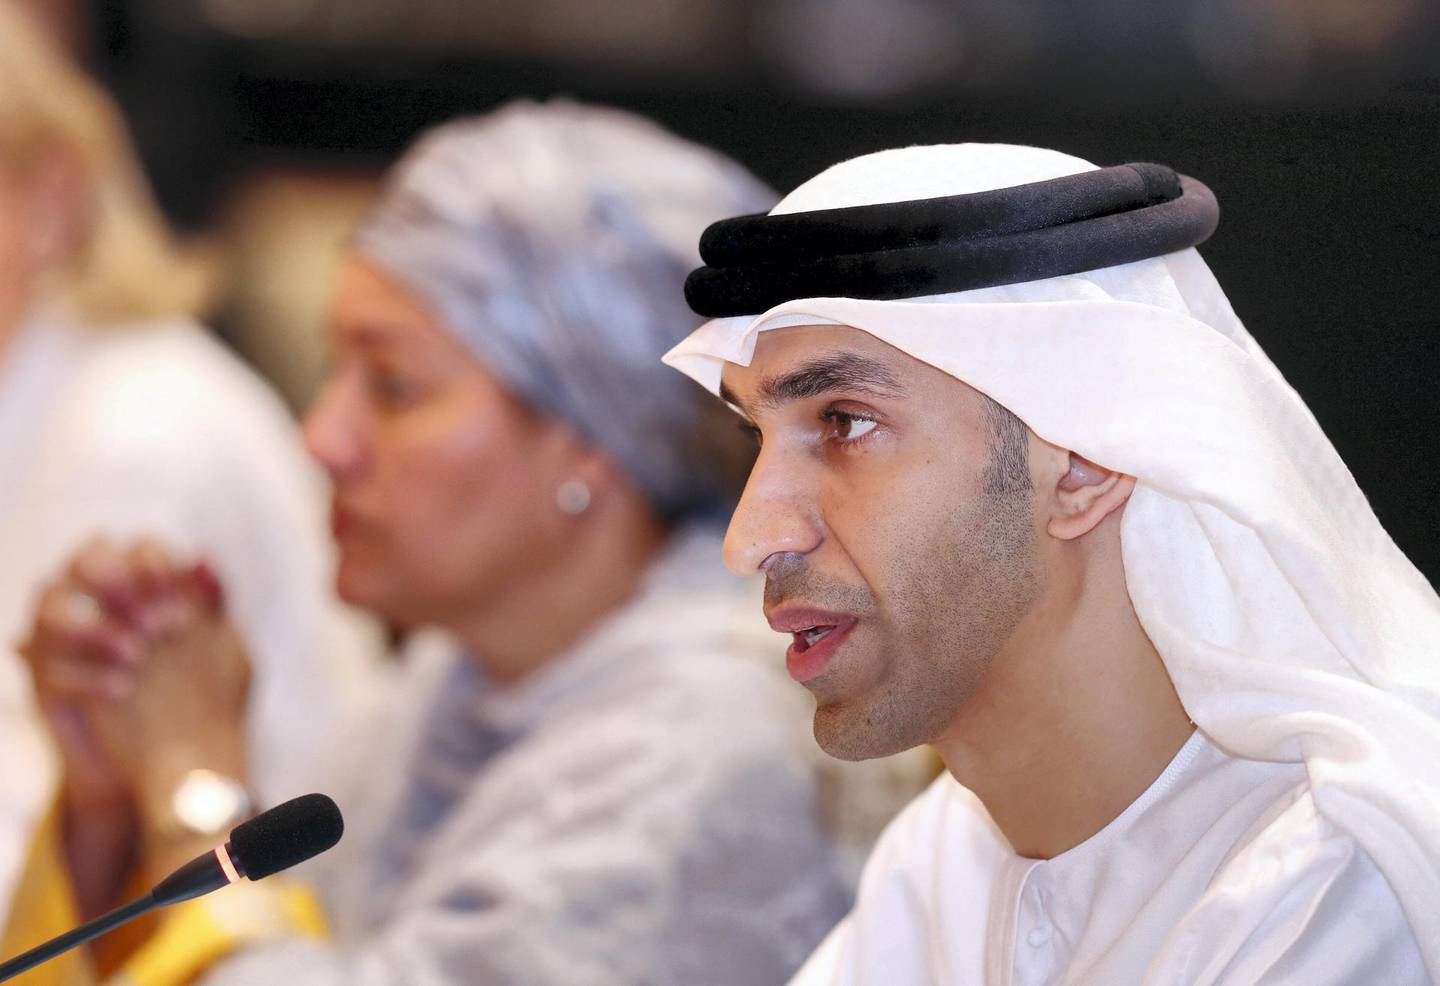 Abu Dhabi, United Arab Emirates - July 01, 2019: Dr. Thani Al Zeyoudi, Minister of Climate Change and Environment speaks. Climate and Health MinistersÕ Meeting. There will be three sections: air quality, climate-induced disasters and weather events, and financing approaches for the health-climate nexus. Day 2 of Abu Dhabi Climate Meeting. Monday the 1st of July 2019. Emirates Palace, Abu Dhabi. Chris Whiteoak / The National